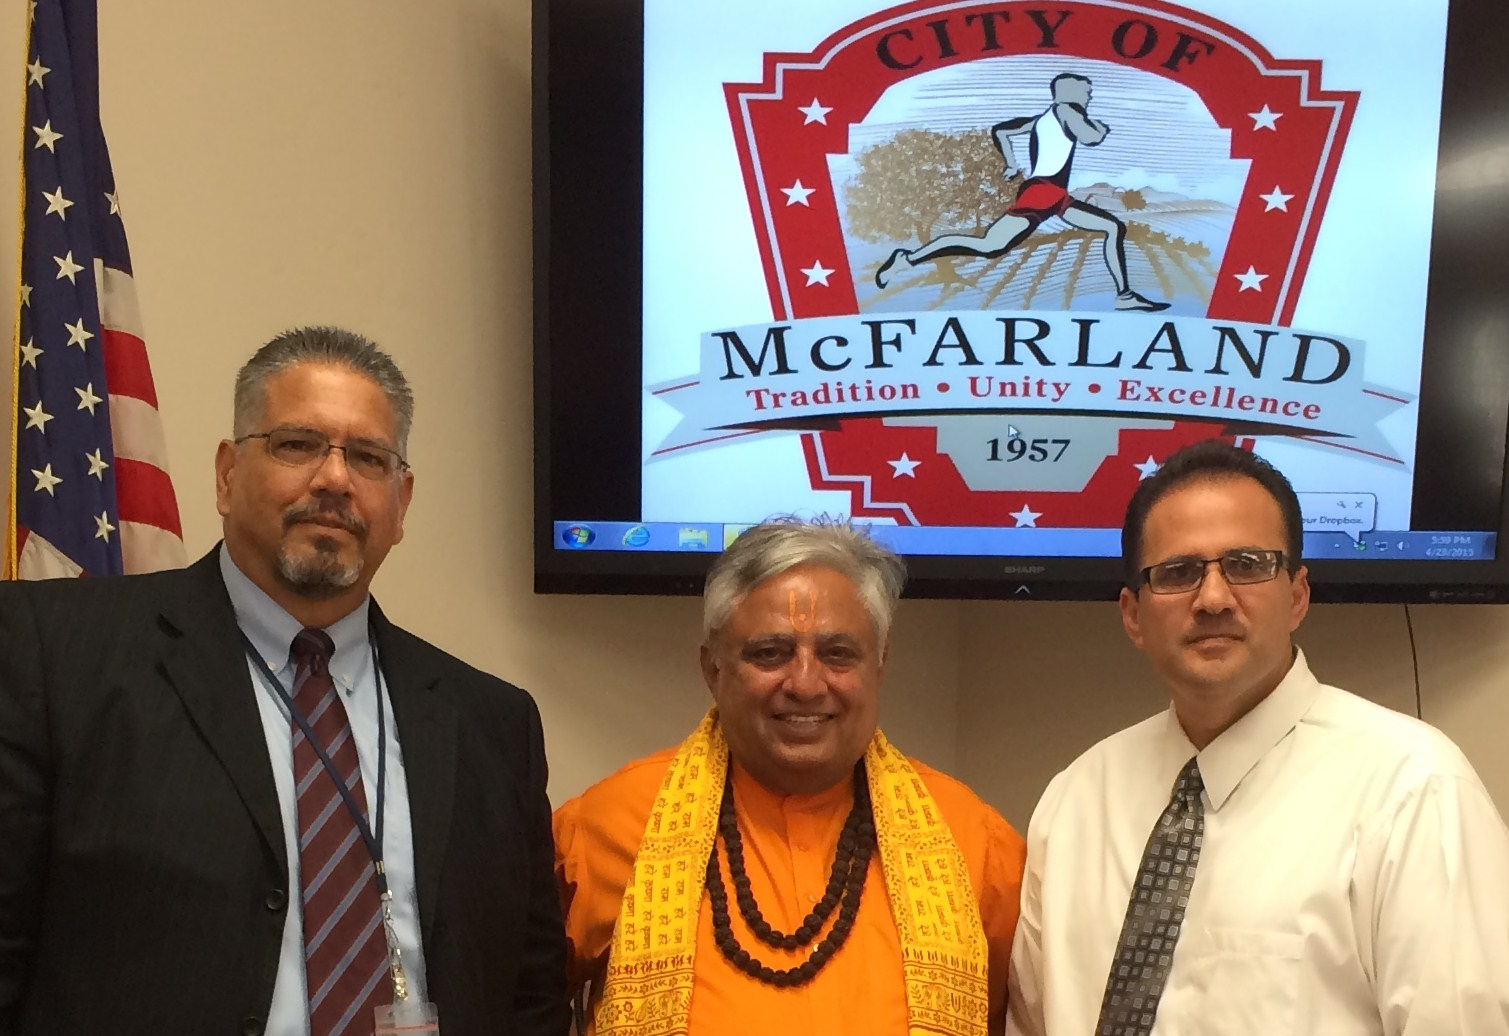 Just before the McFarland City Council Hindu invocation, from left to right are?City Manager John Wooner, Hindu statesman Rajan Zed and Mayor Manuel Cantu Junior.